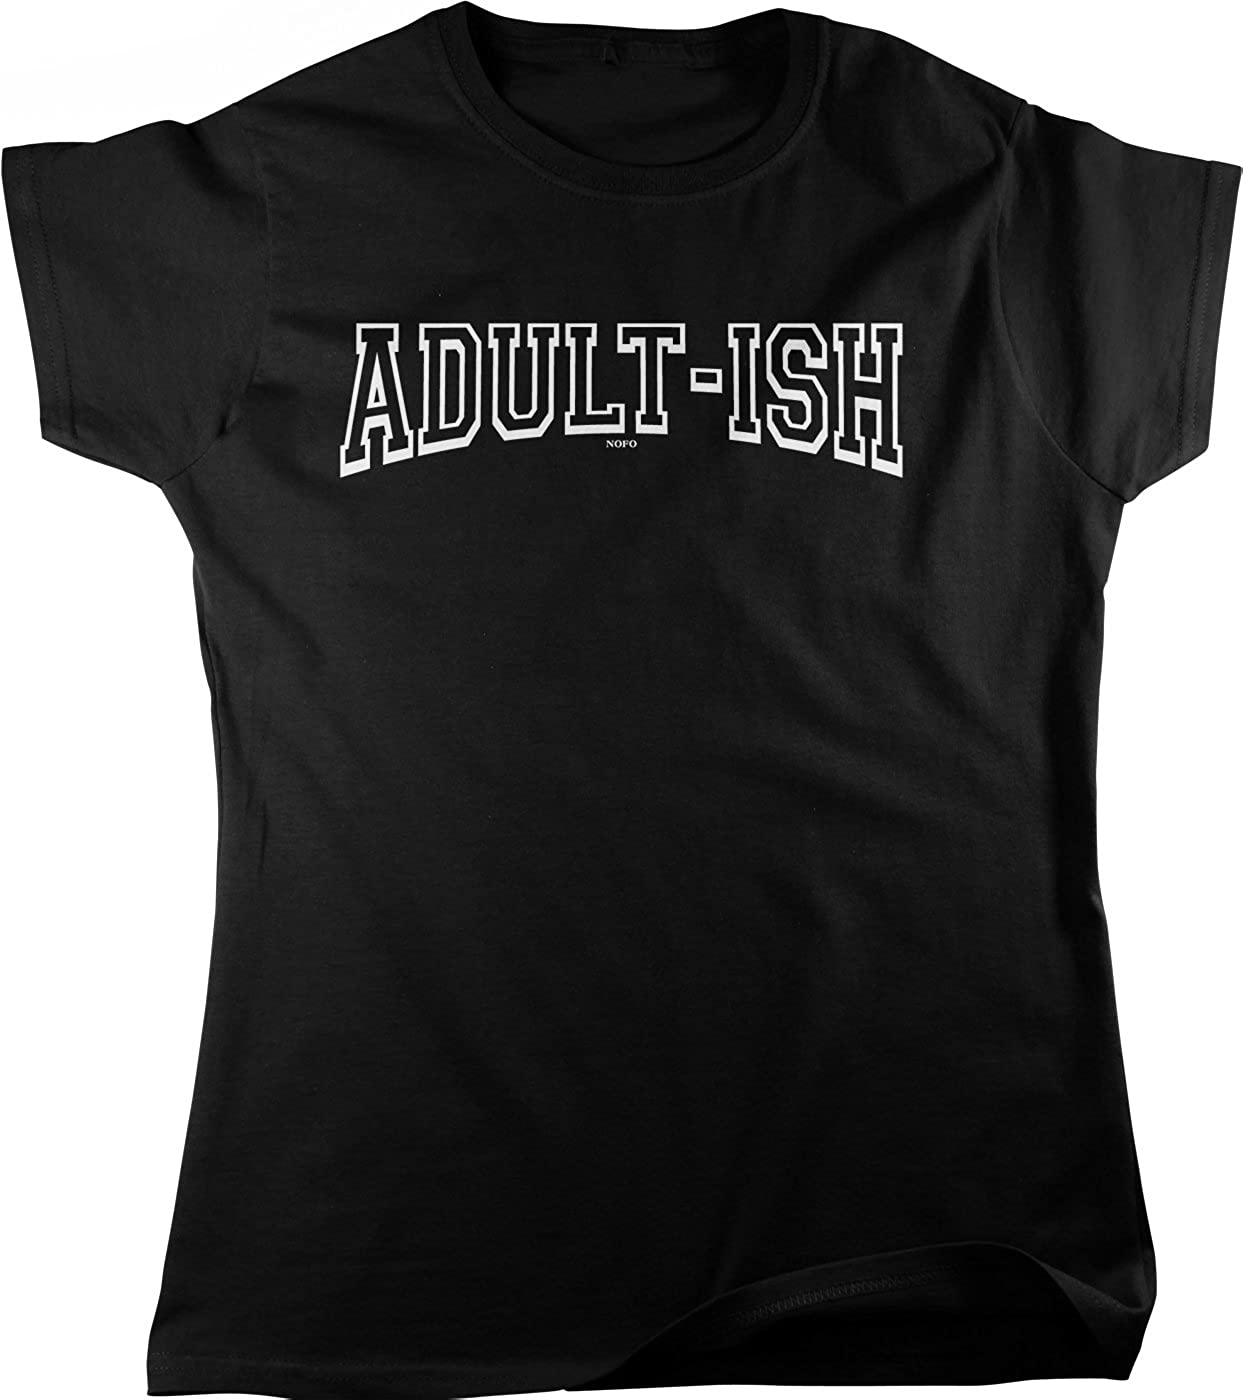 ADULT-ISH T Shirt available in Black White or Pink Novelty